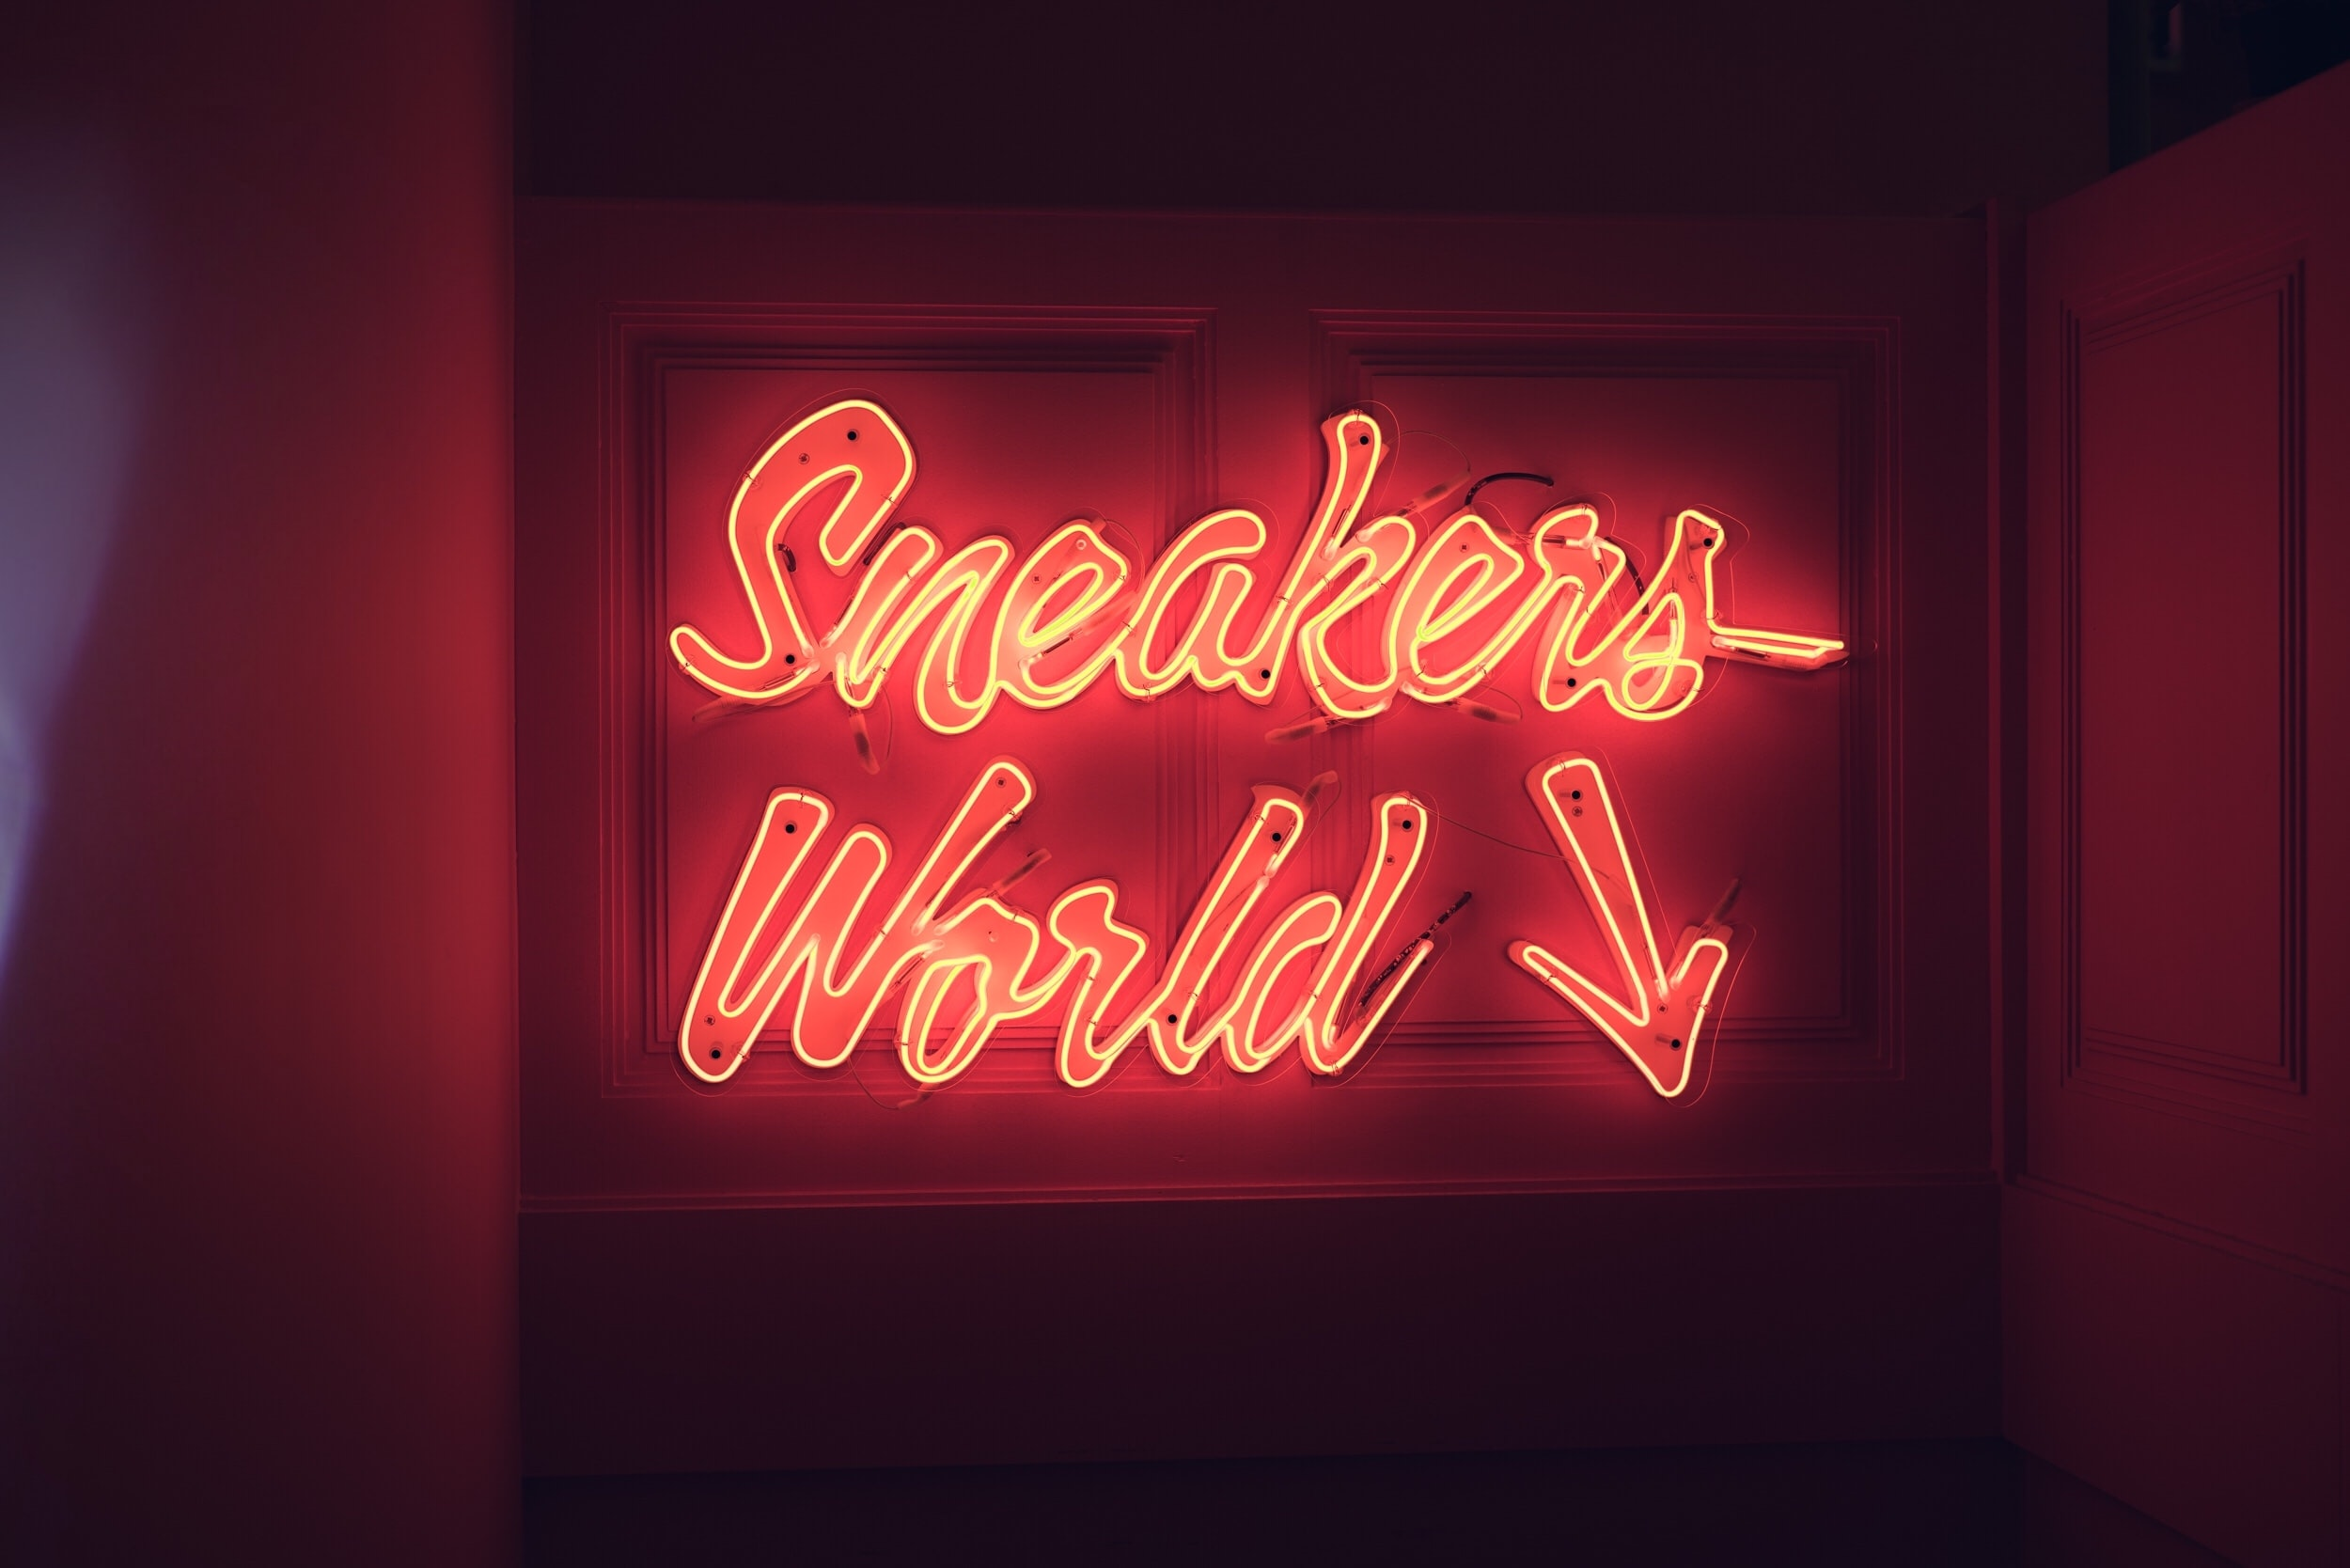 sneakers world neon light signage